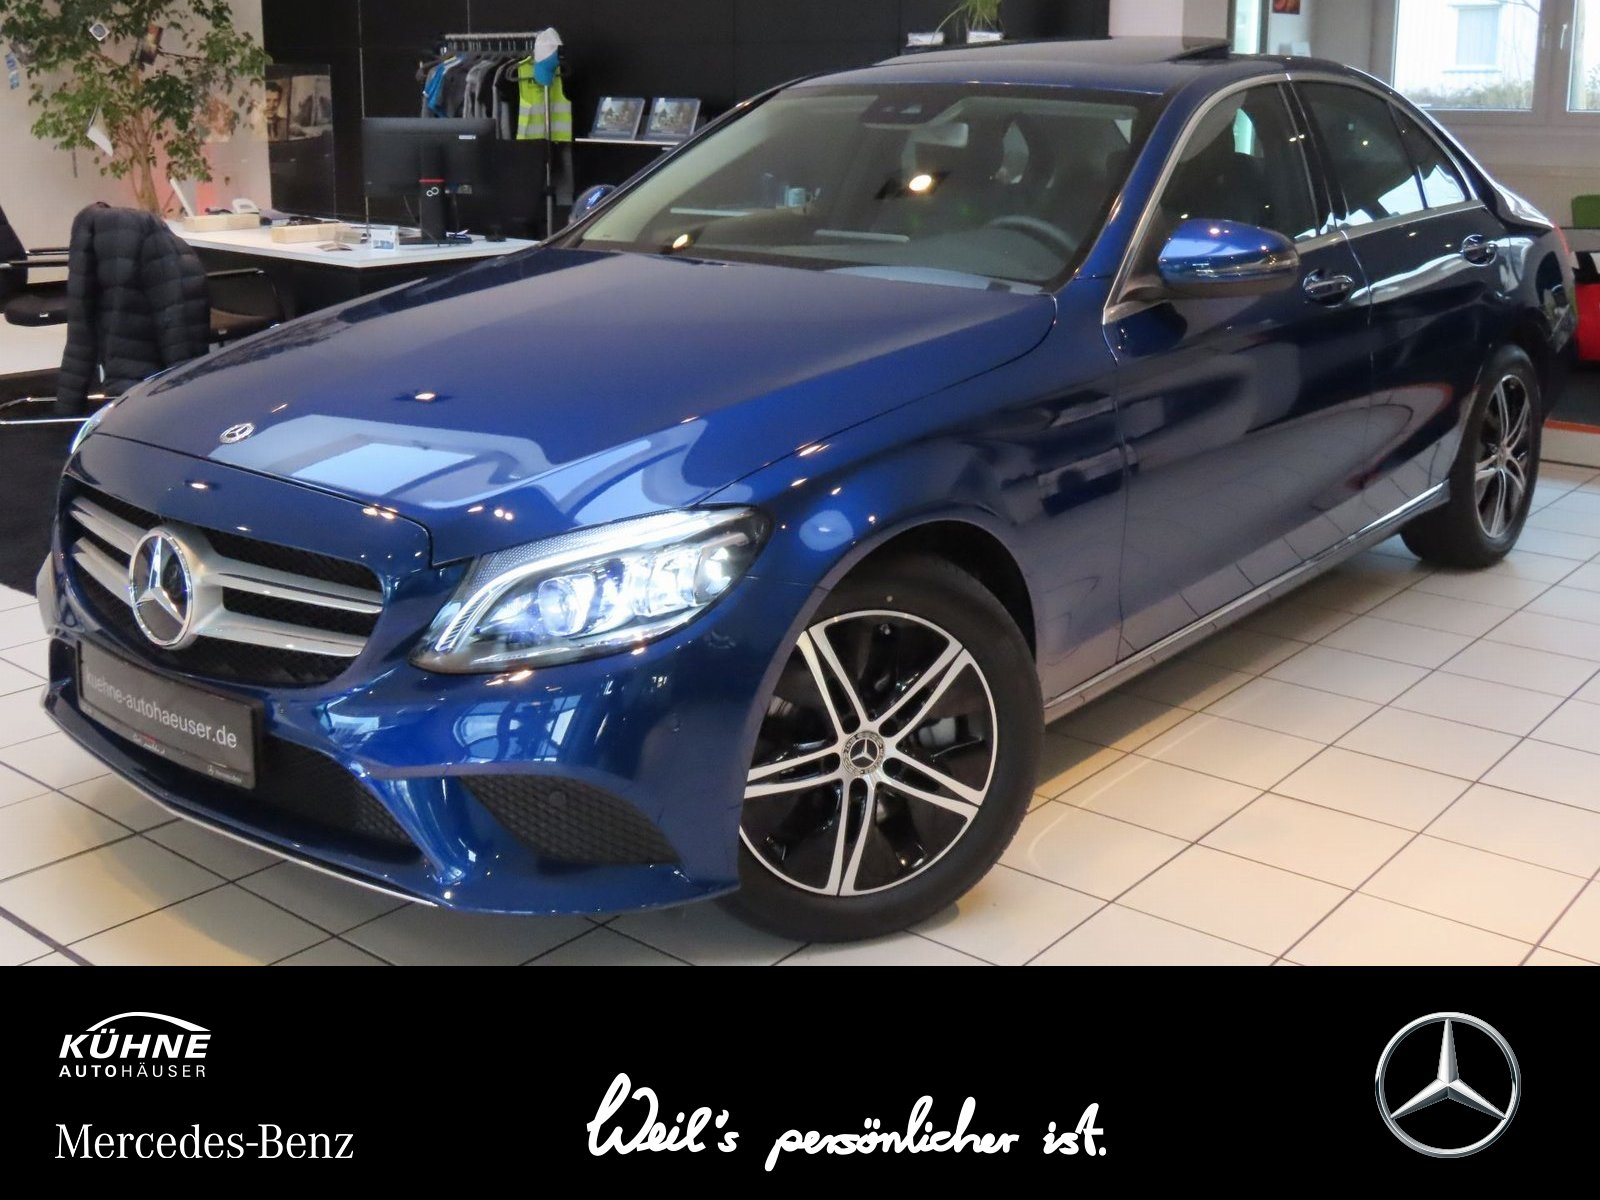 mercedes-benz c 300 avantgarde business keygo ambient high shd, jahr 2019, benzin